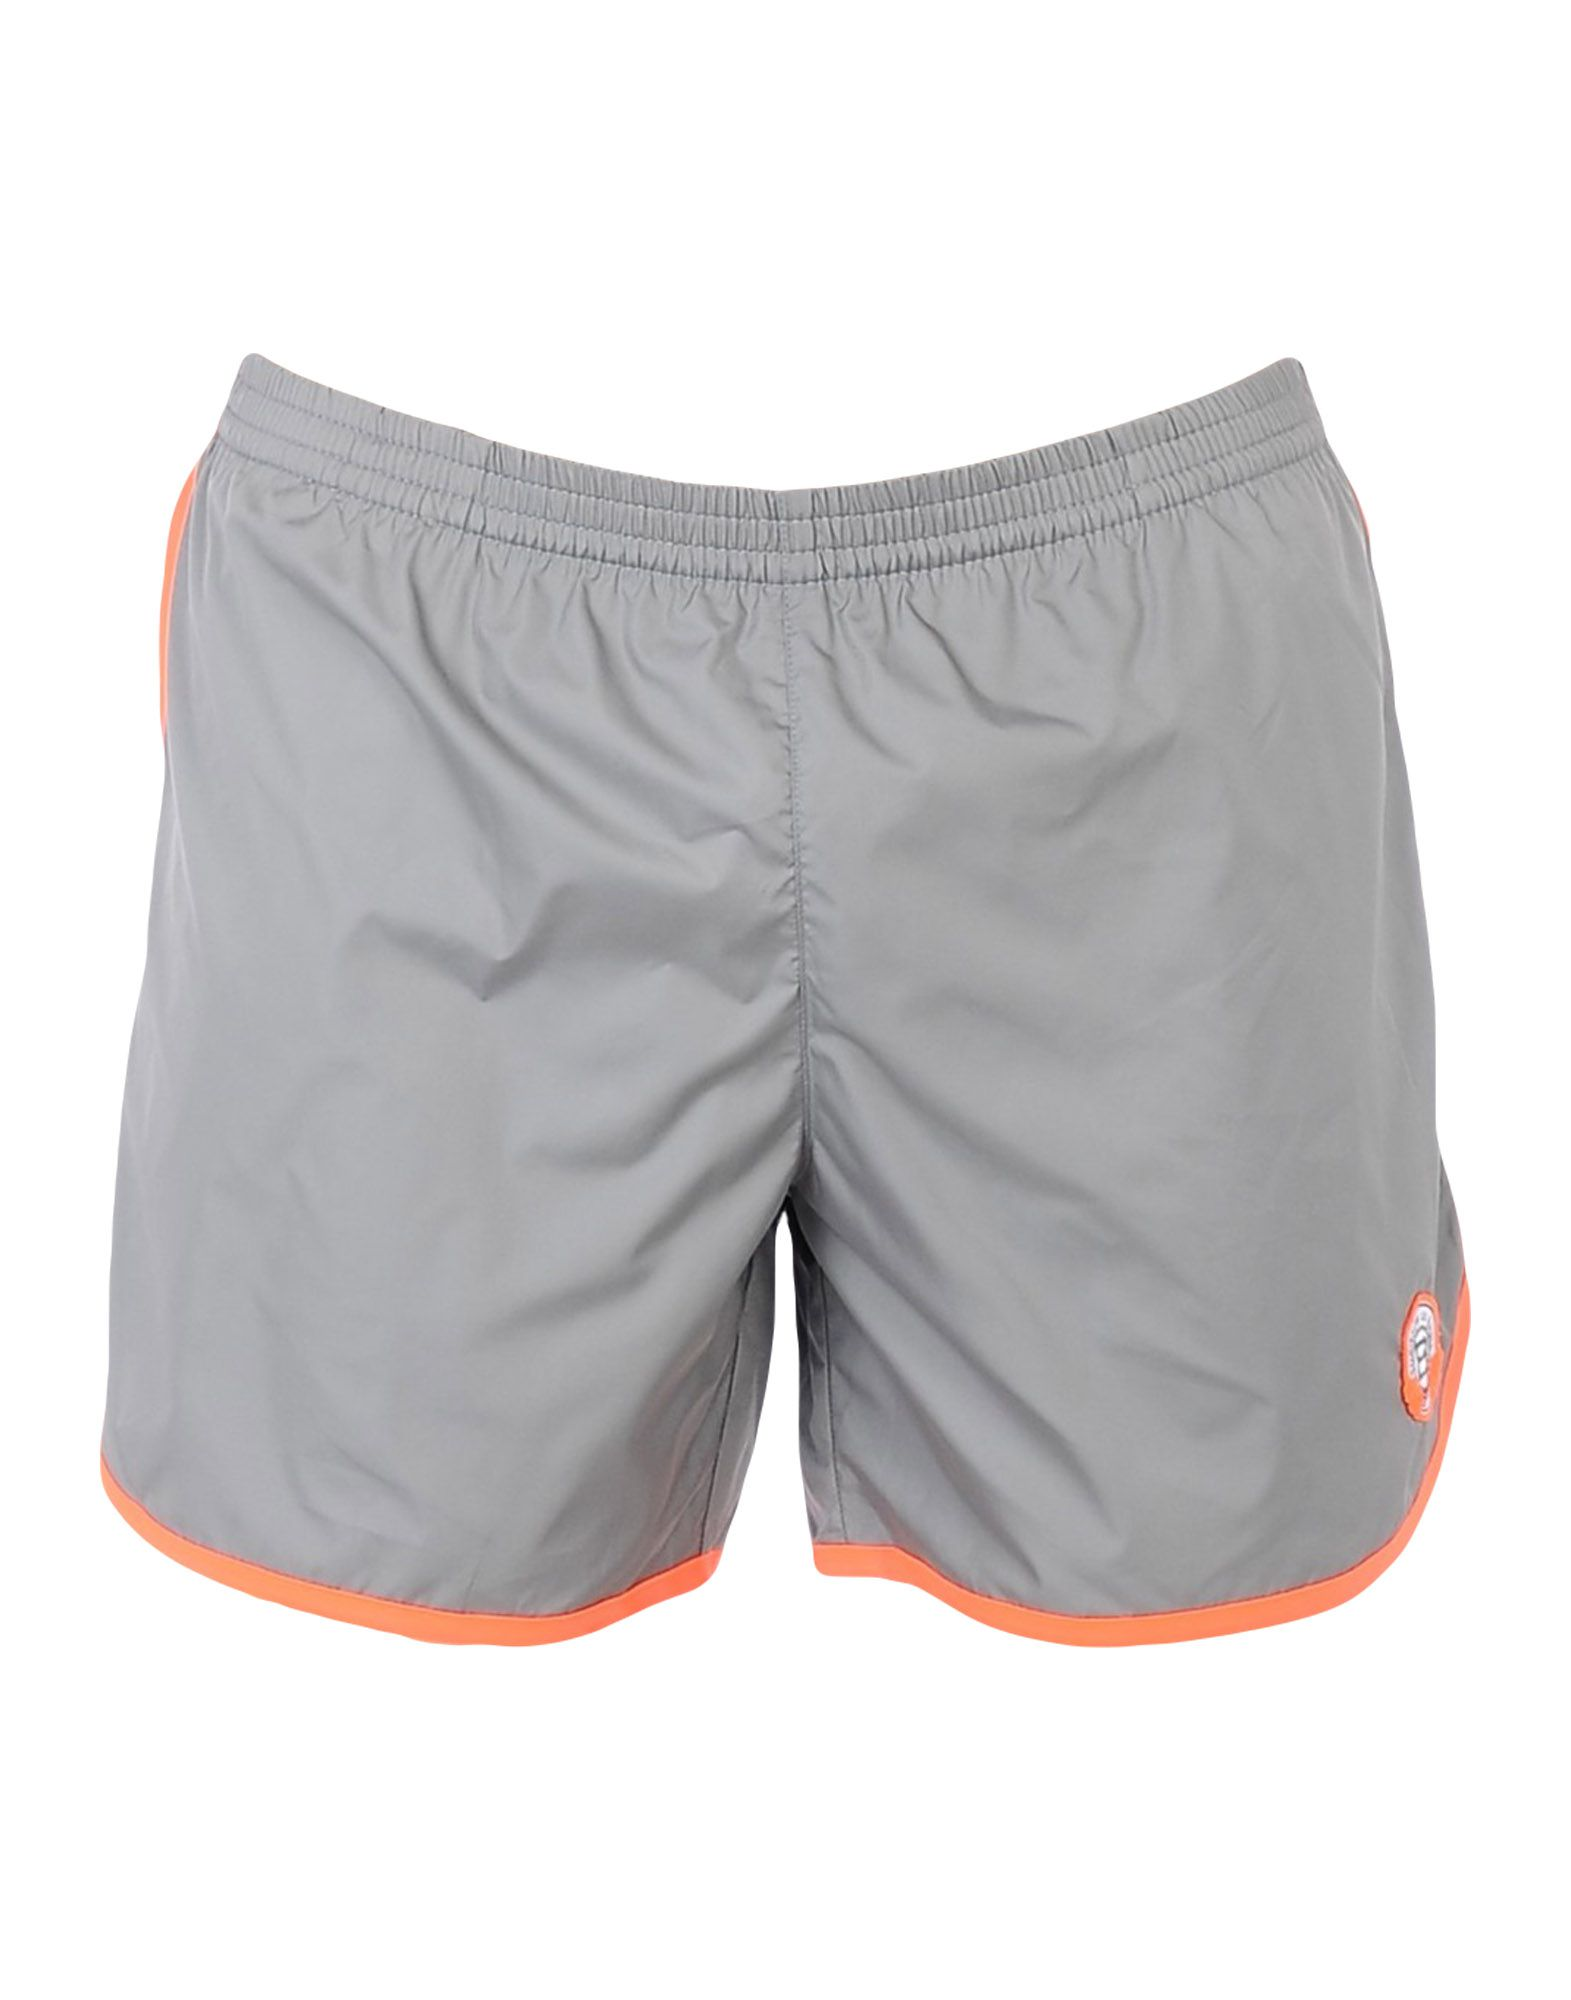 ROBINSON LES BAINS Swim Shorts in Grey